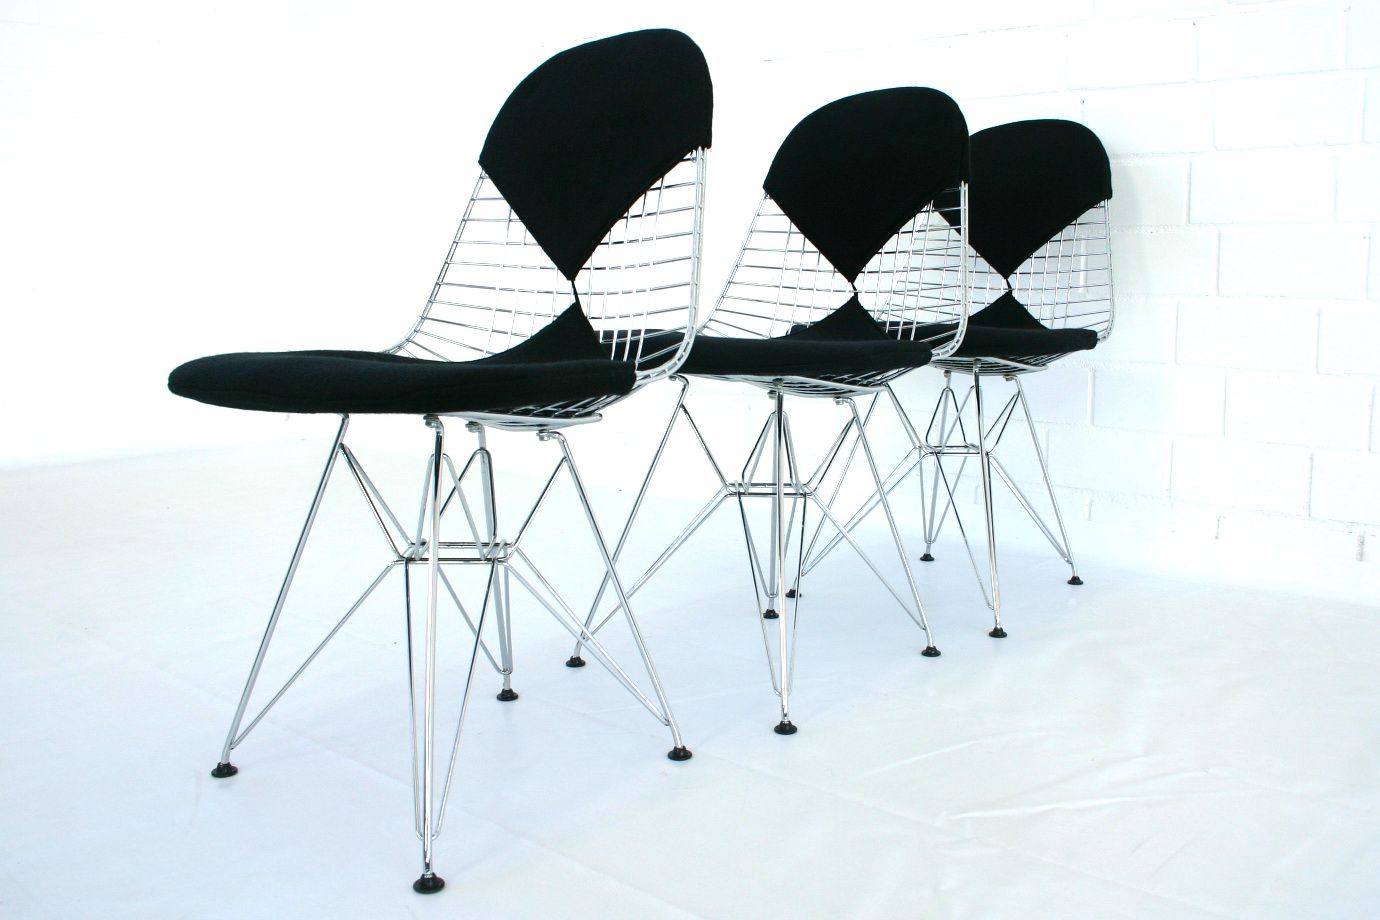 dkr 2 eiffelturm stahldraht st hle von charles eames f r vitra 3er set bei pamono kaufen. Black Bedroom Furniture Sets. Home Design Ideas